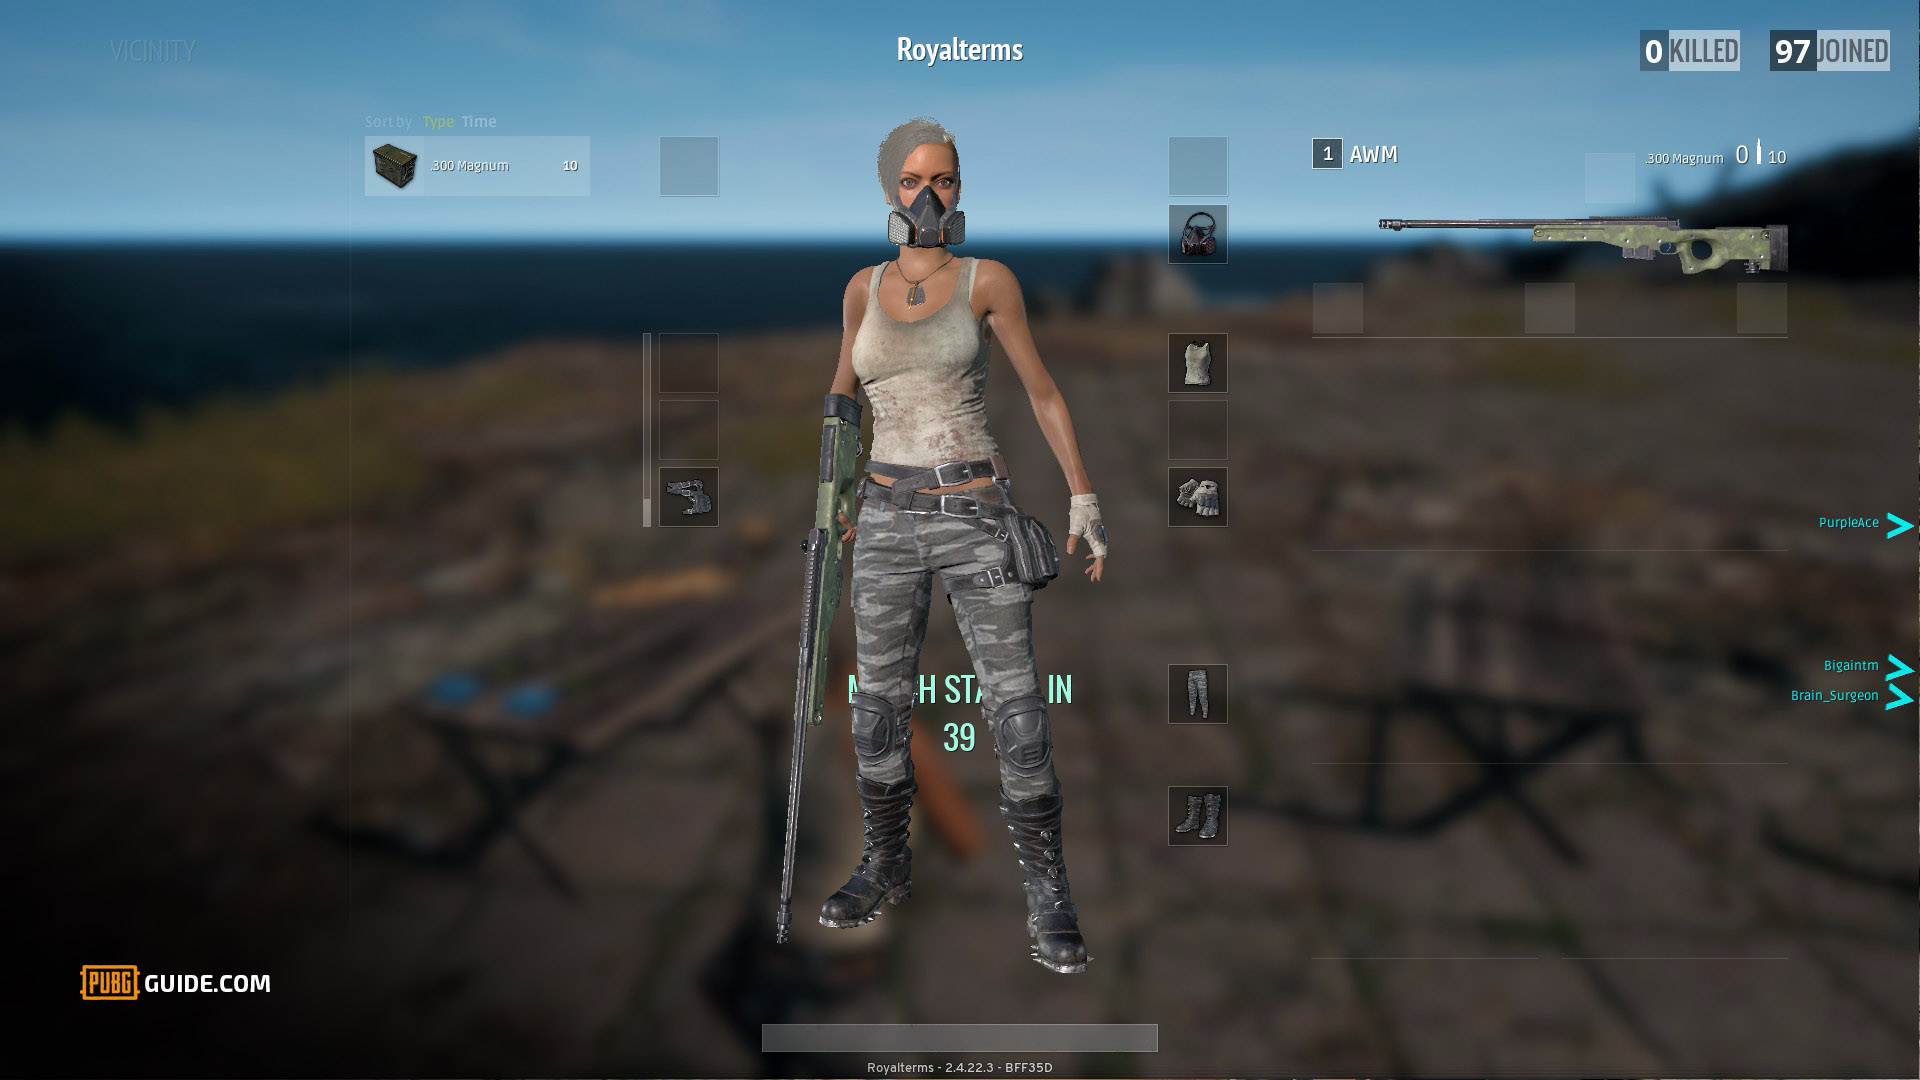 Pubg Sniper Rifle Awm Description together with File Dodge Seneca  1961    Dutch licence registration DL 57 88 pic08 as well Cbr 250rr 1999 Mc22 Australian Delivered further Watch in addition 11 Best Fuel Efficient Motorcycles You Can Buy In 2016. on zero motorcycles